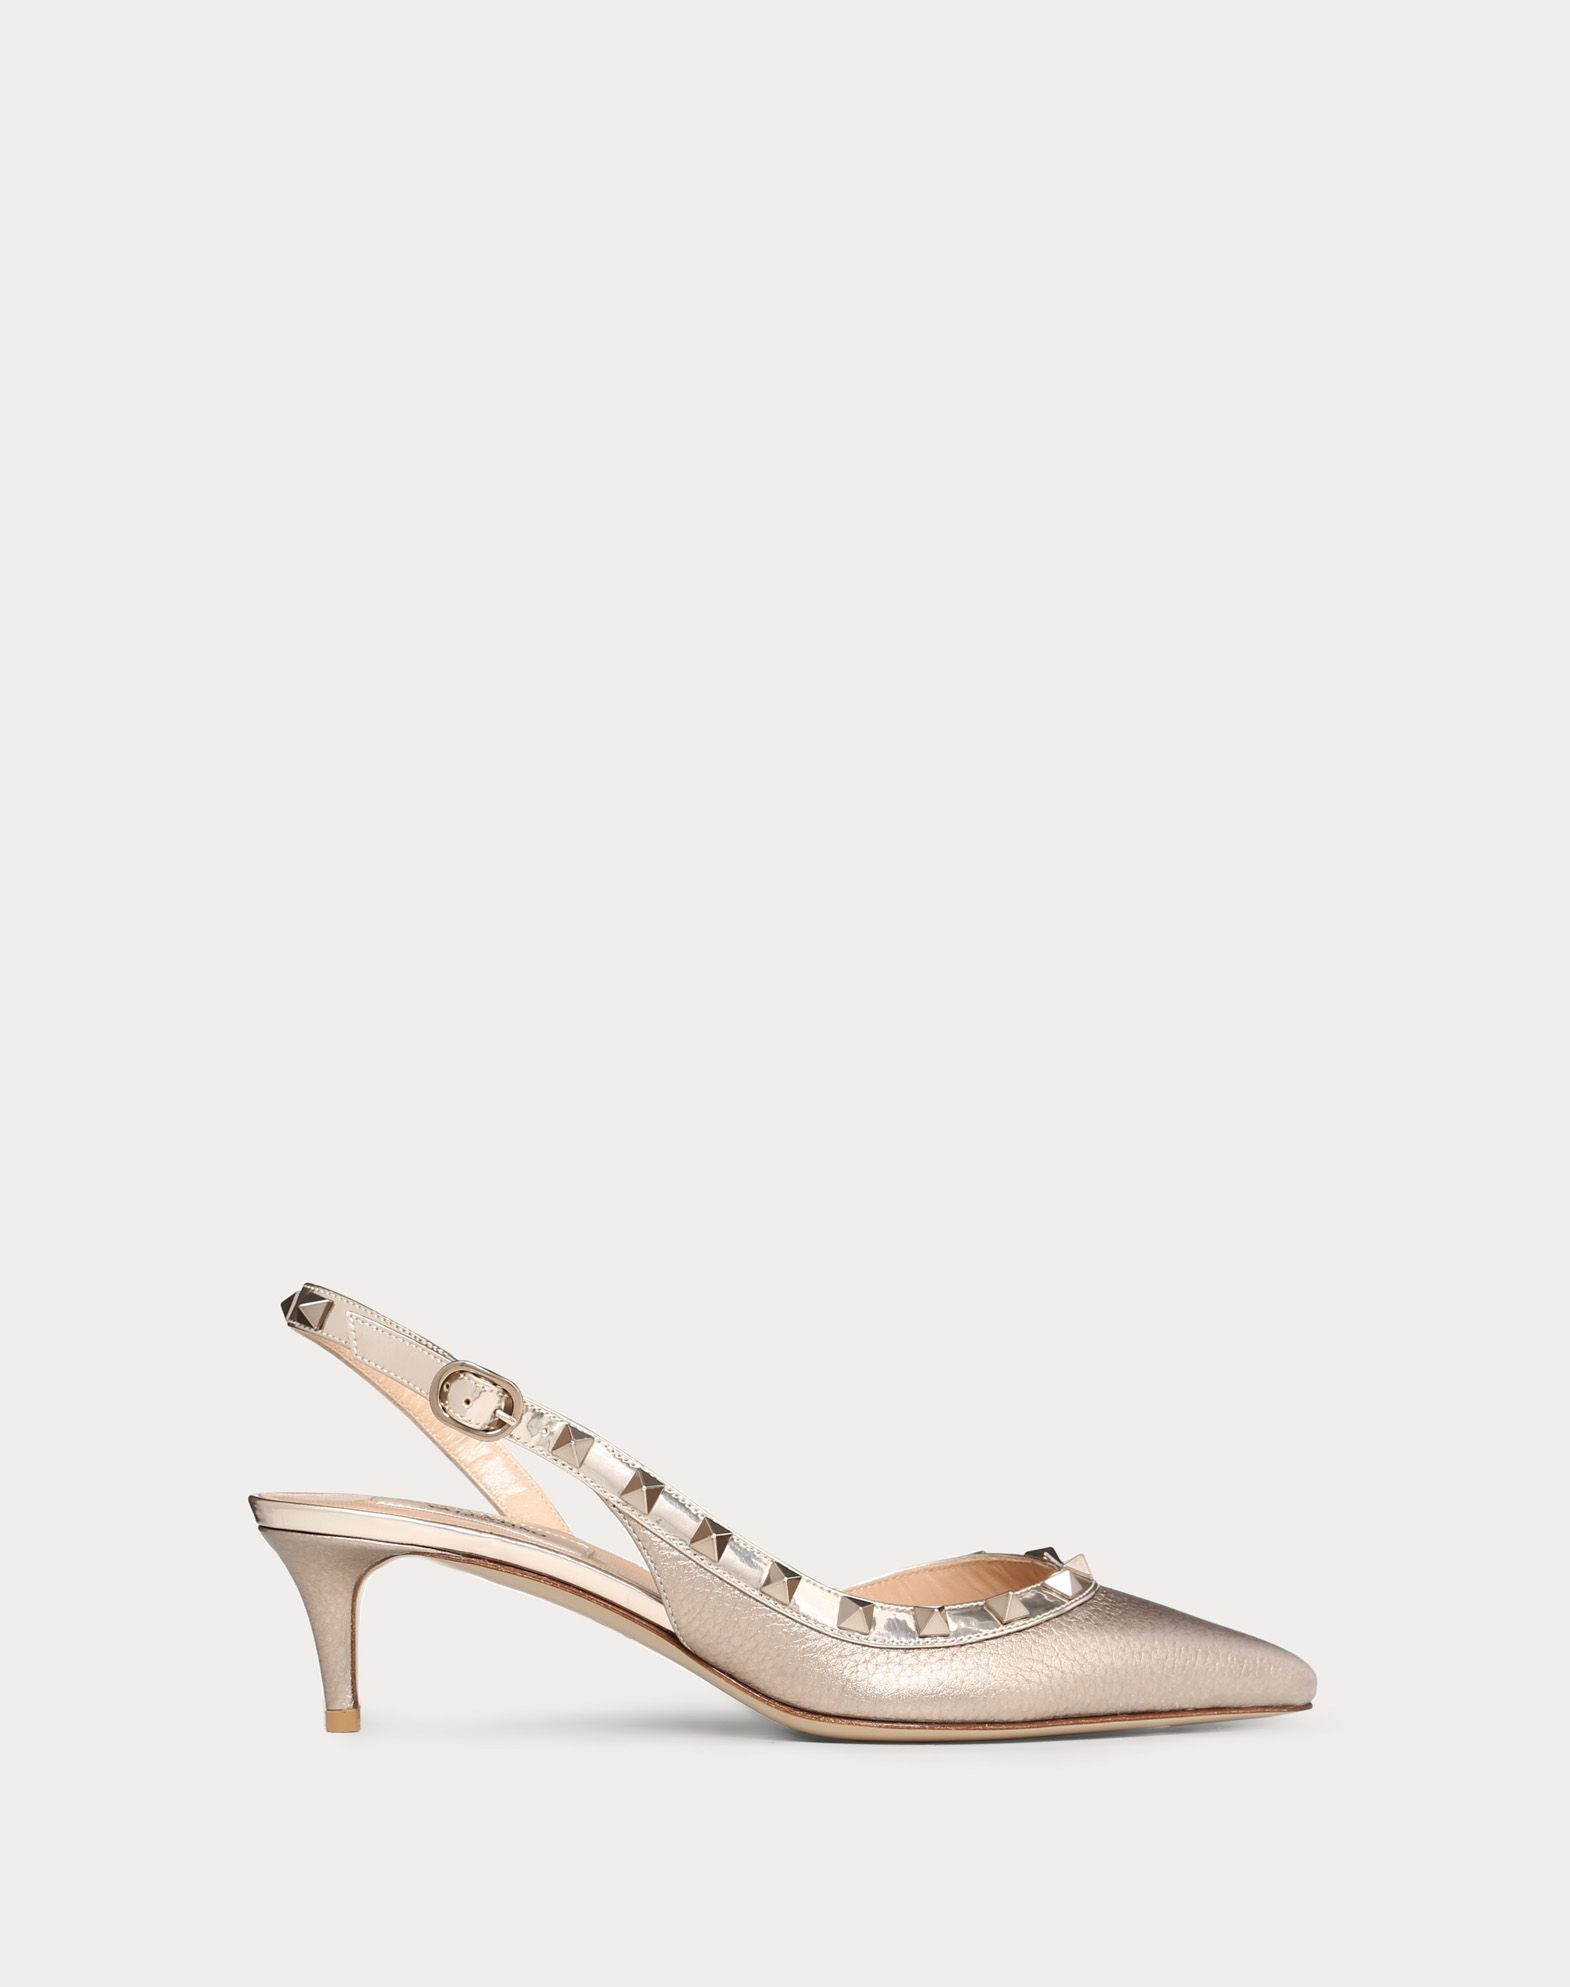 Metallic Rockstud Slingback Pump 50mm